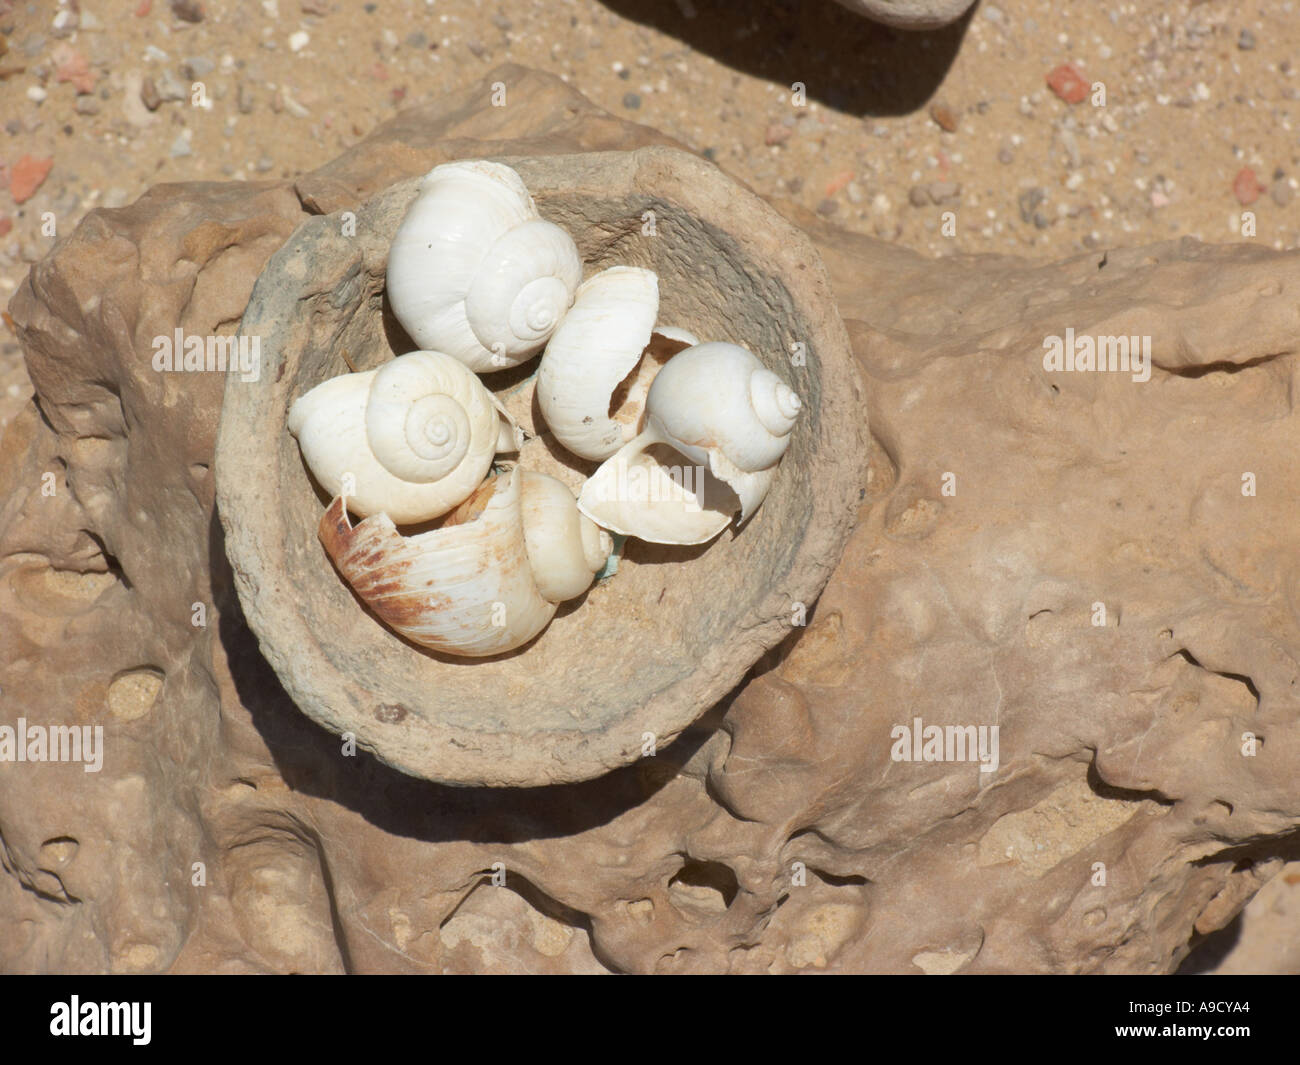 Shells collected in the Western Desert Egypt - Stock Image